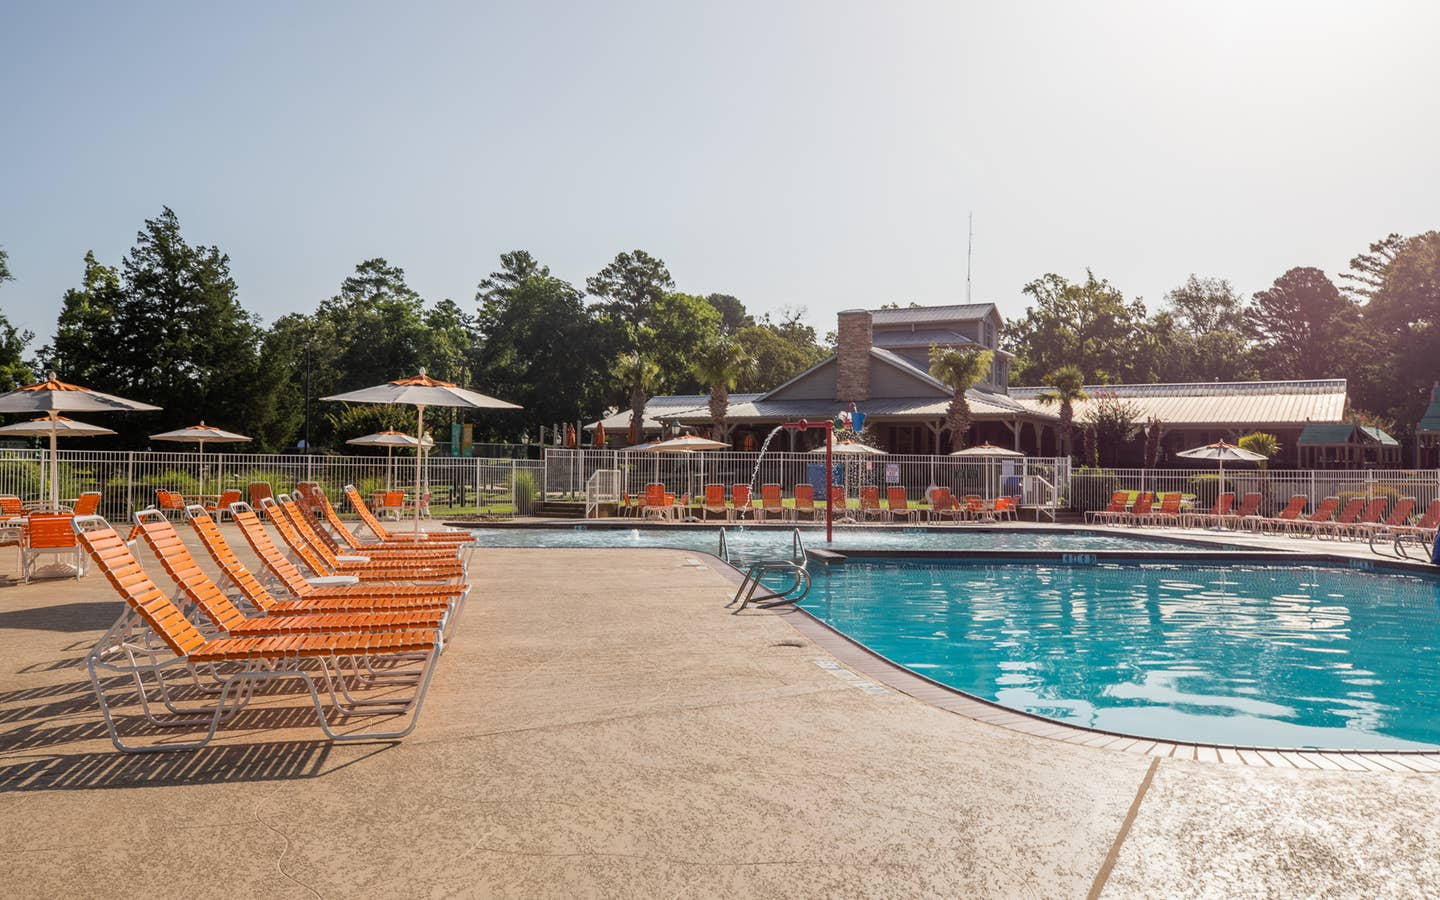 Outdoor pool with orange pool chairs surrounding it at Villages Resort in Flint, Texas.